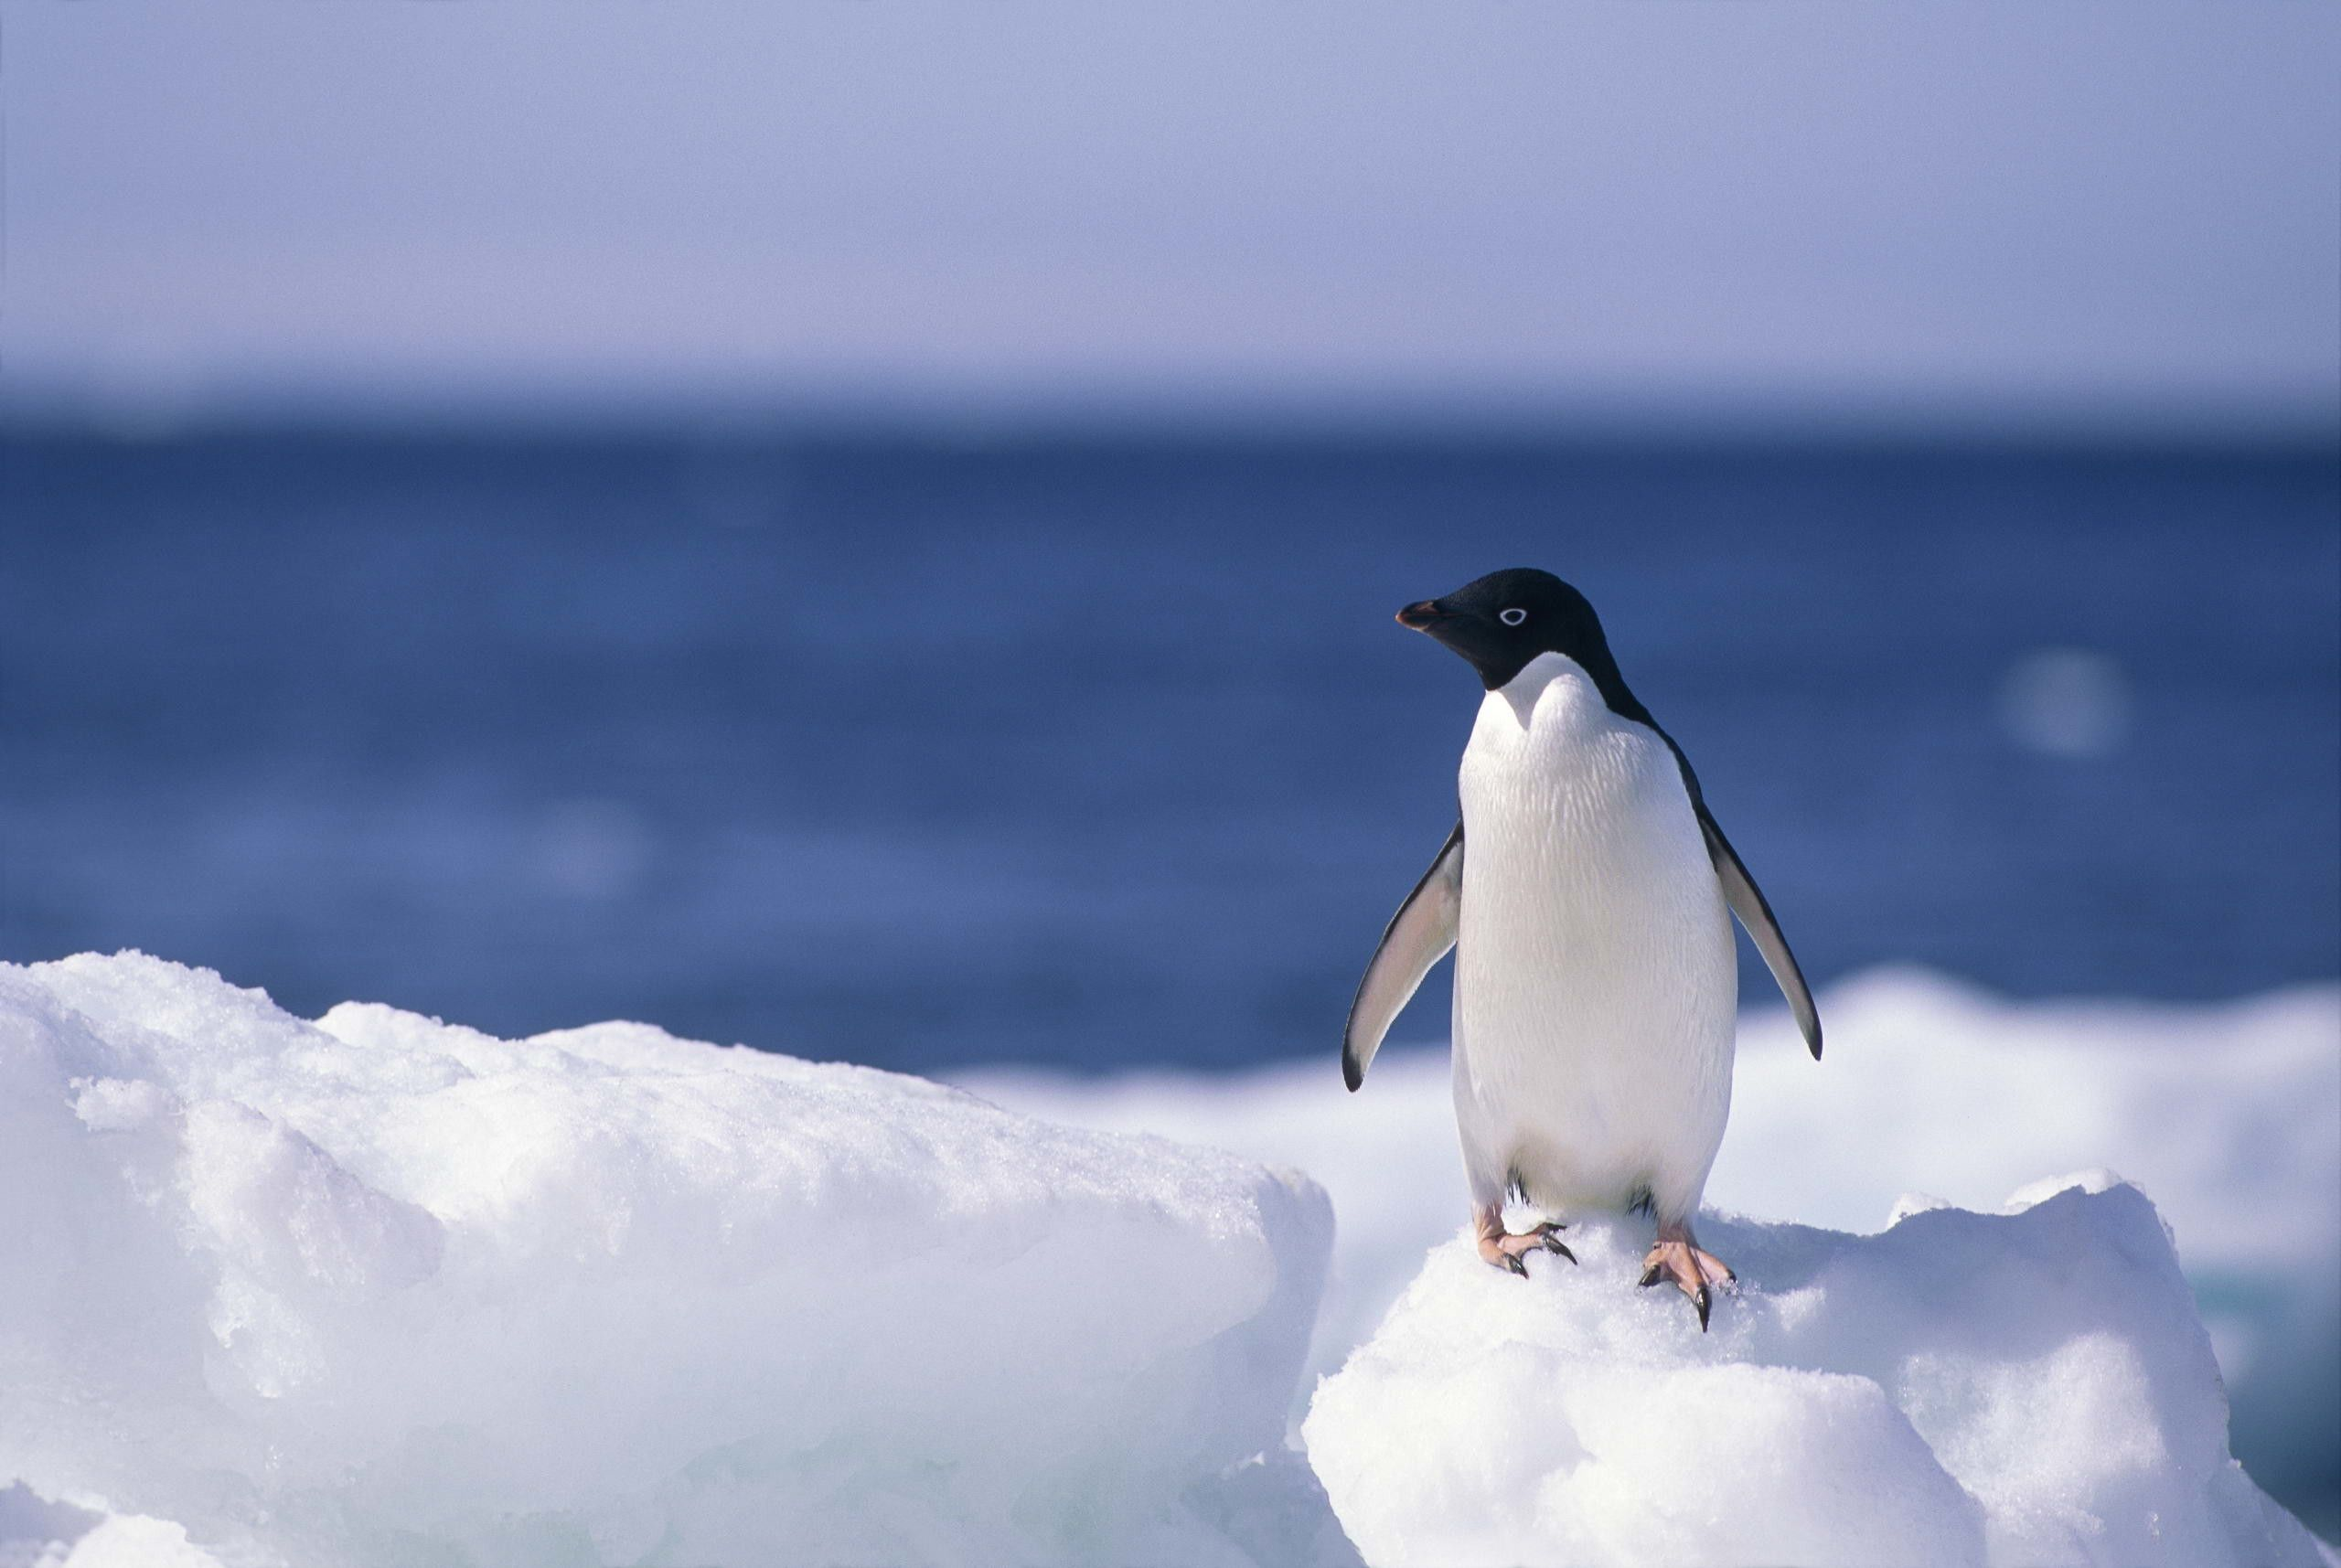 a picture of a penguin